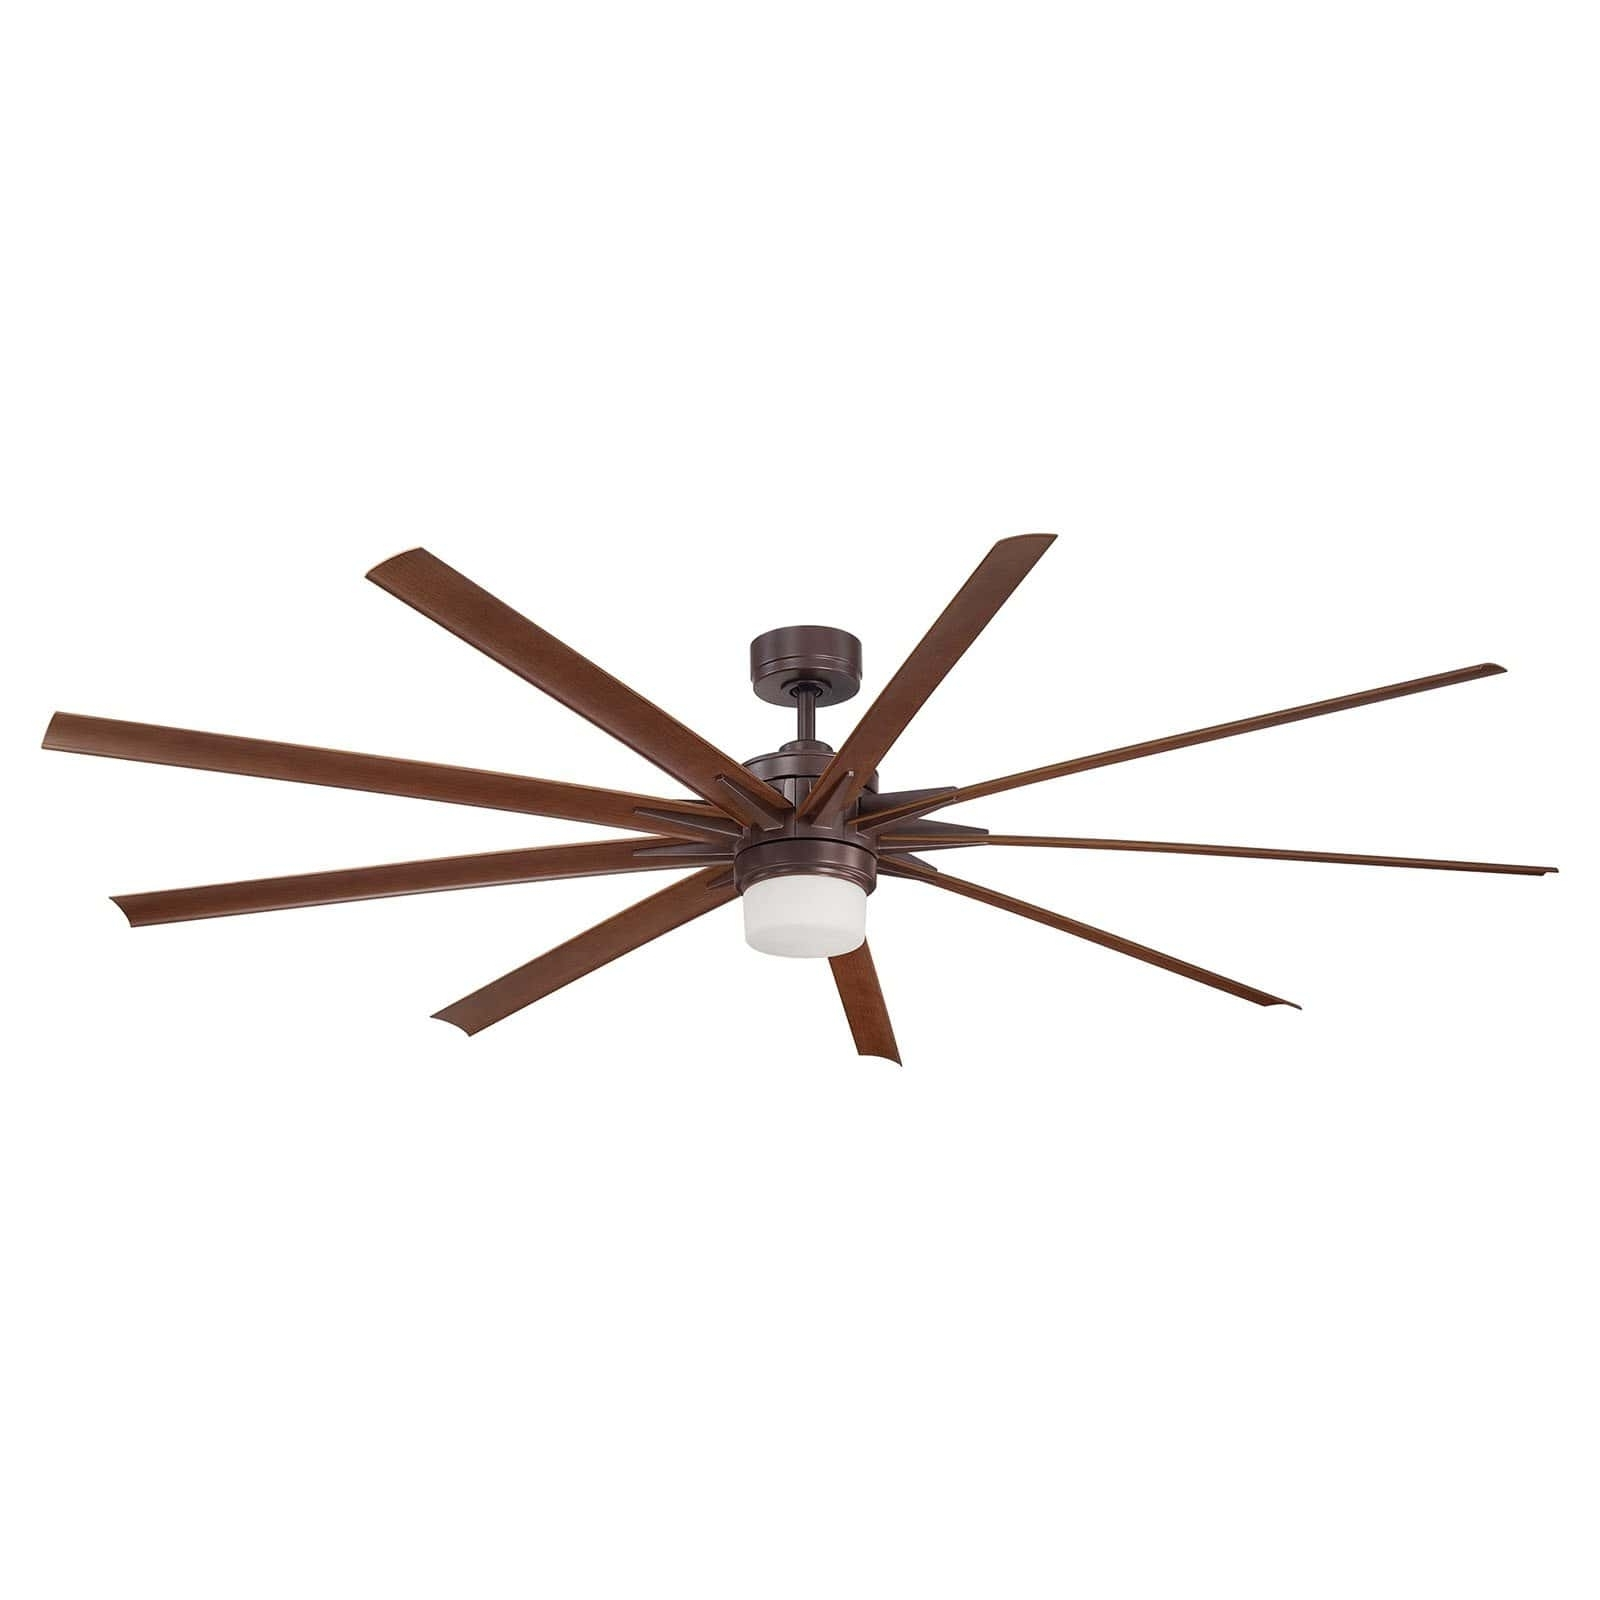 Outdoor Ceiling Fans With Covers Intended For Most Recently Released Outdoor Ceiling Fan With Light Type — Sherizampelli Landscape (View 13 of 20)